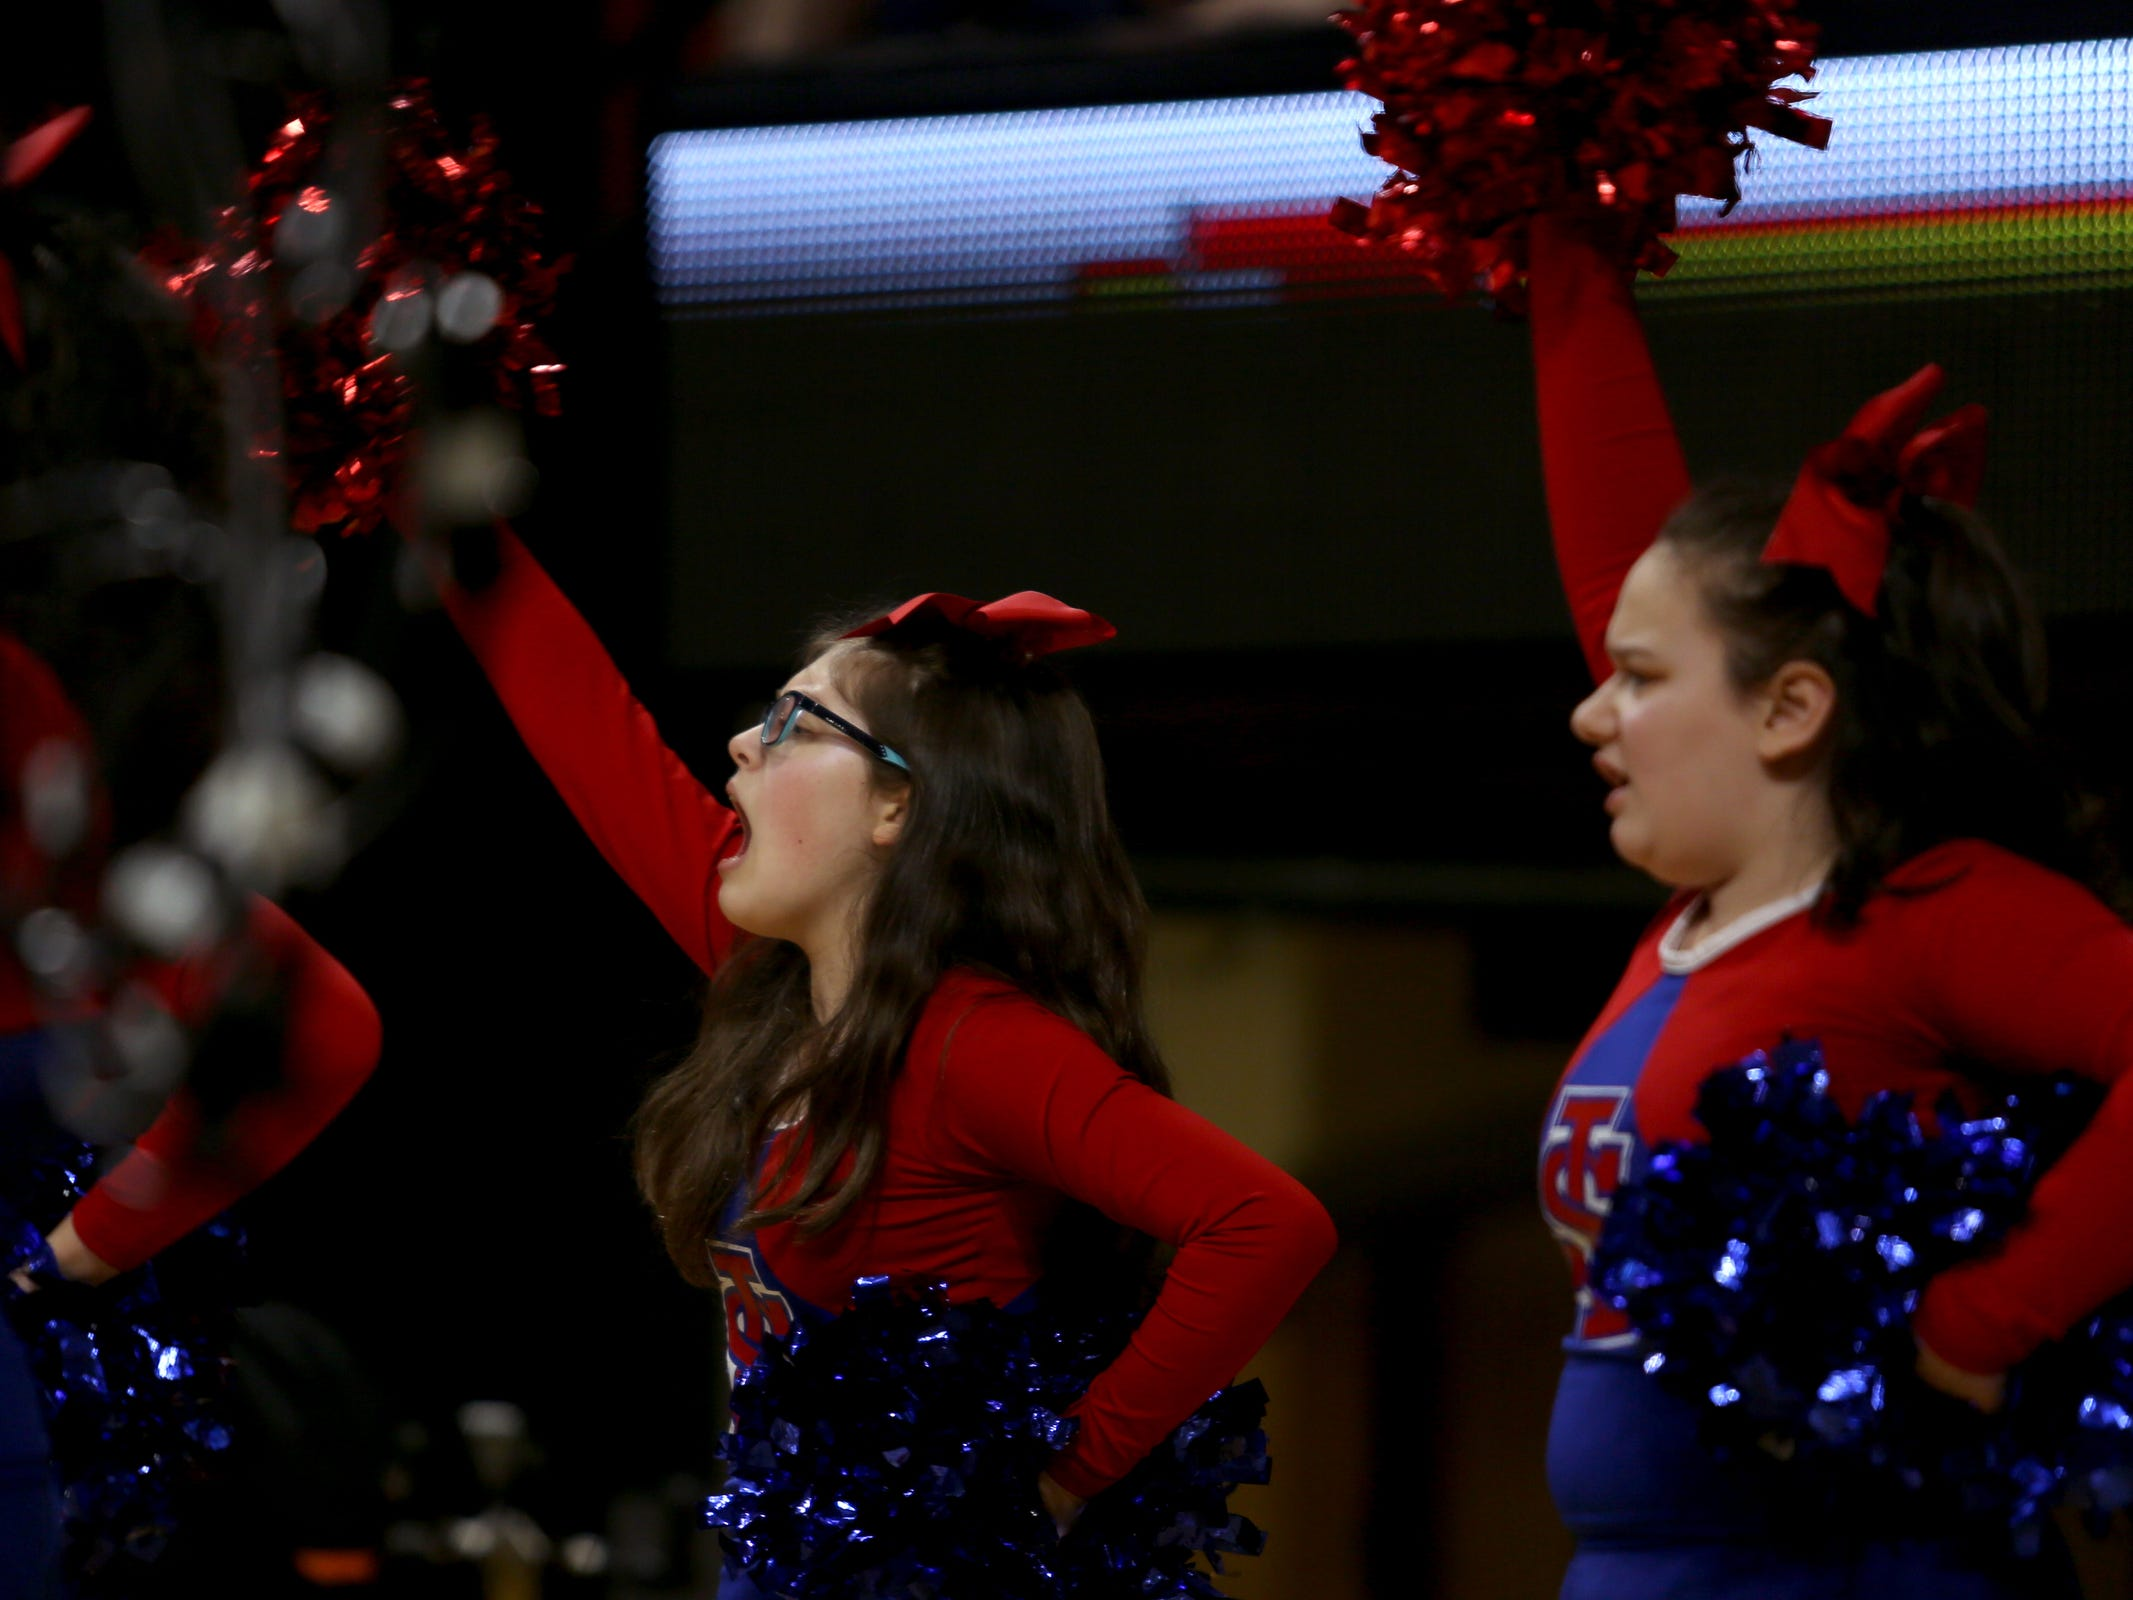 La Salle Prep cheerleaders perform in the first half of the La Salle Prep vs. Silverton girls basketball game in the OSAA Class 5A quarterfinals at Oregon State University in Corvallis on Thursday, March 7, 2019. La Salle Prep won the game 57-46.